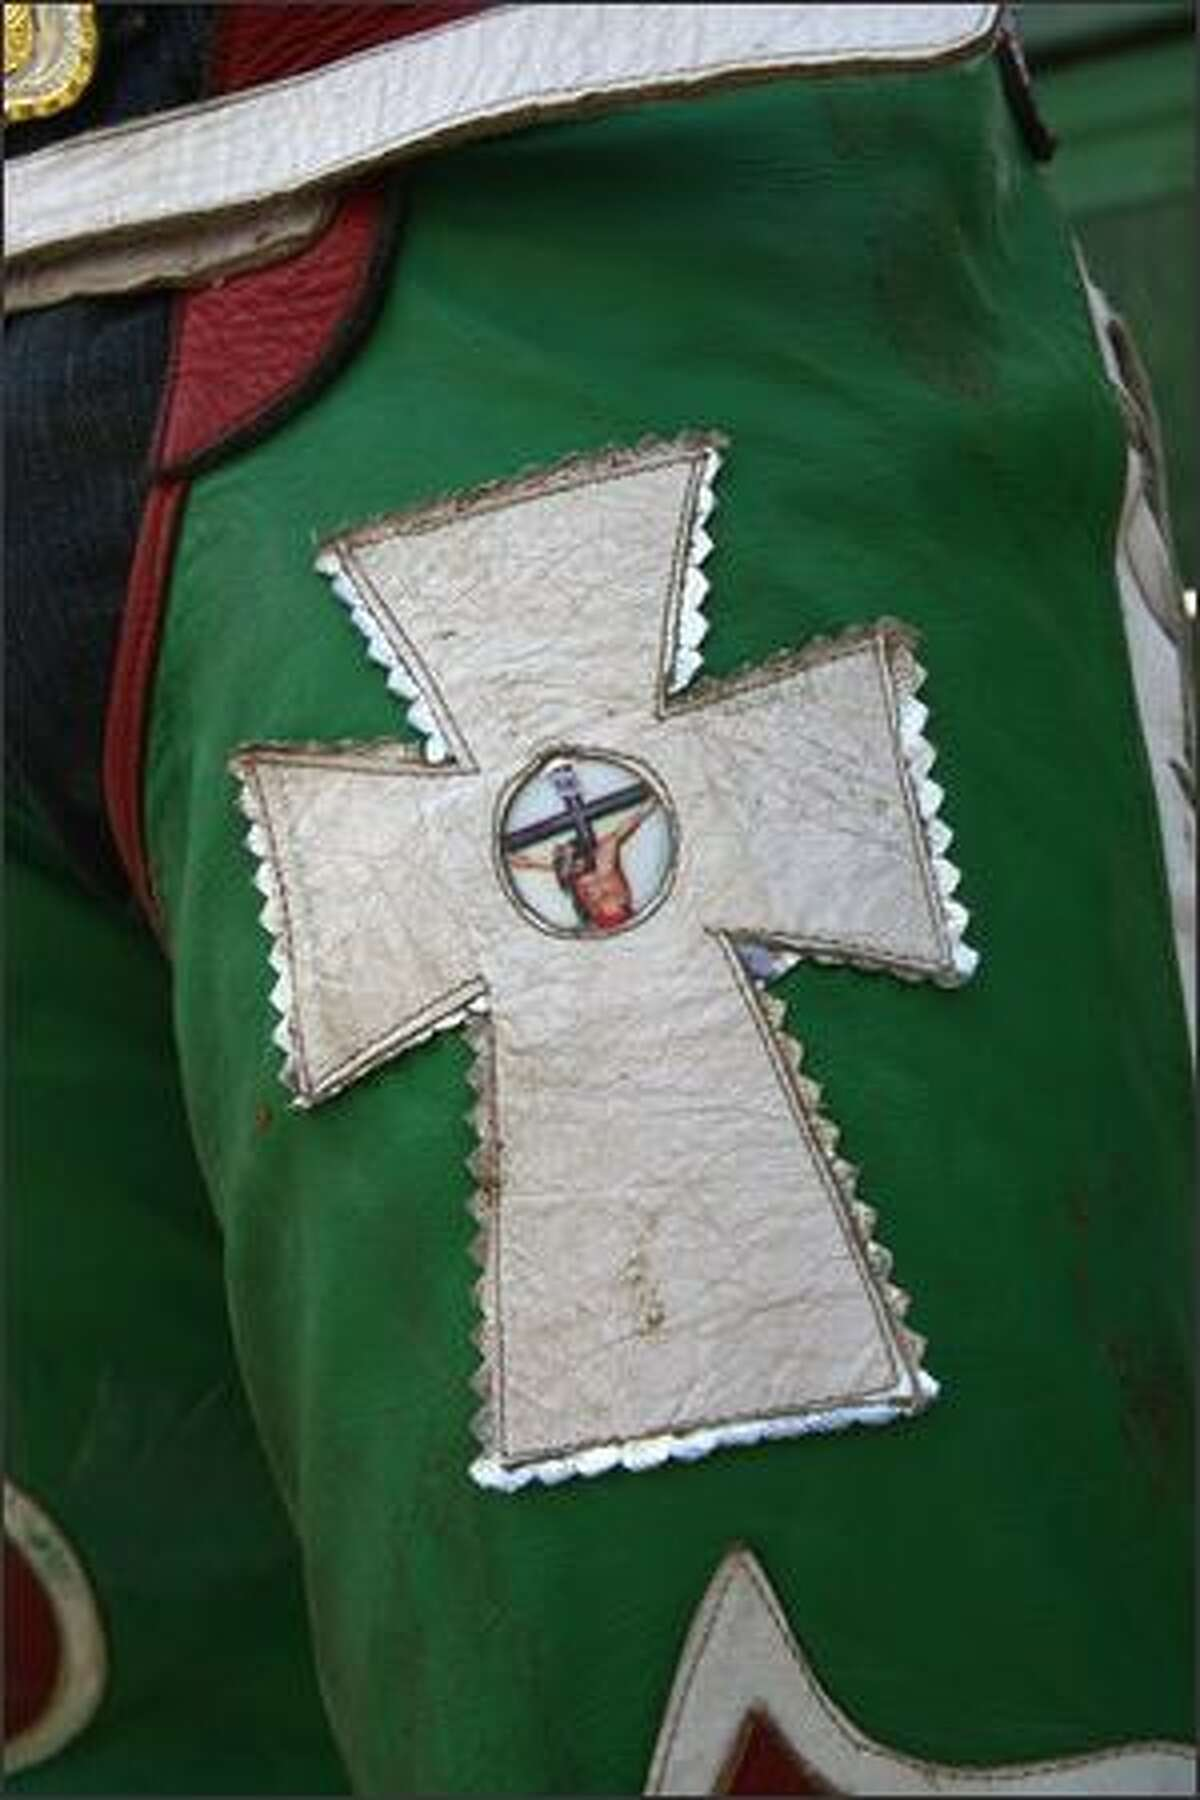 An image representing Jesus Christ on the cross adorns a pair of chaps.